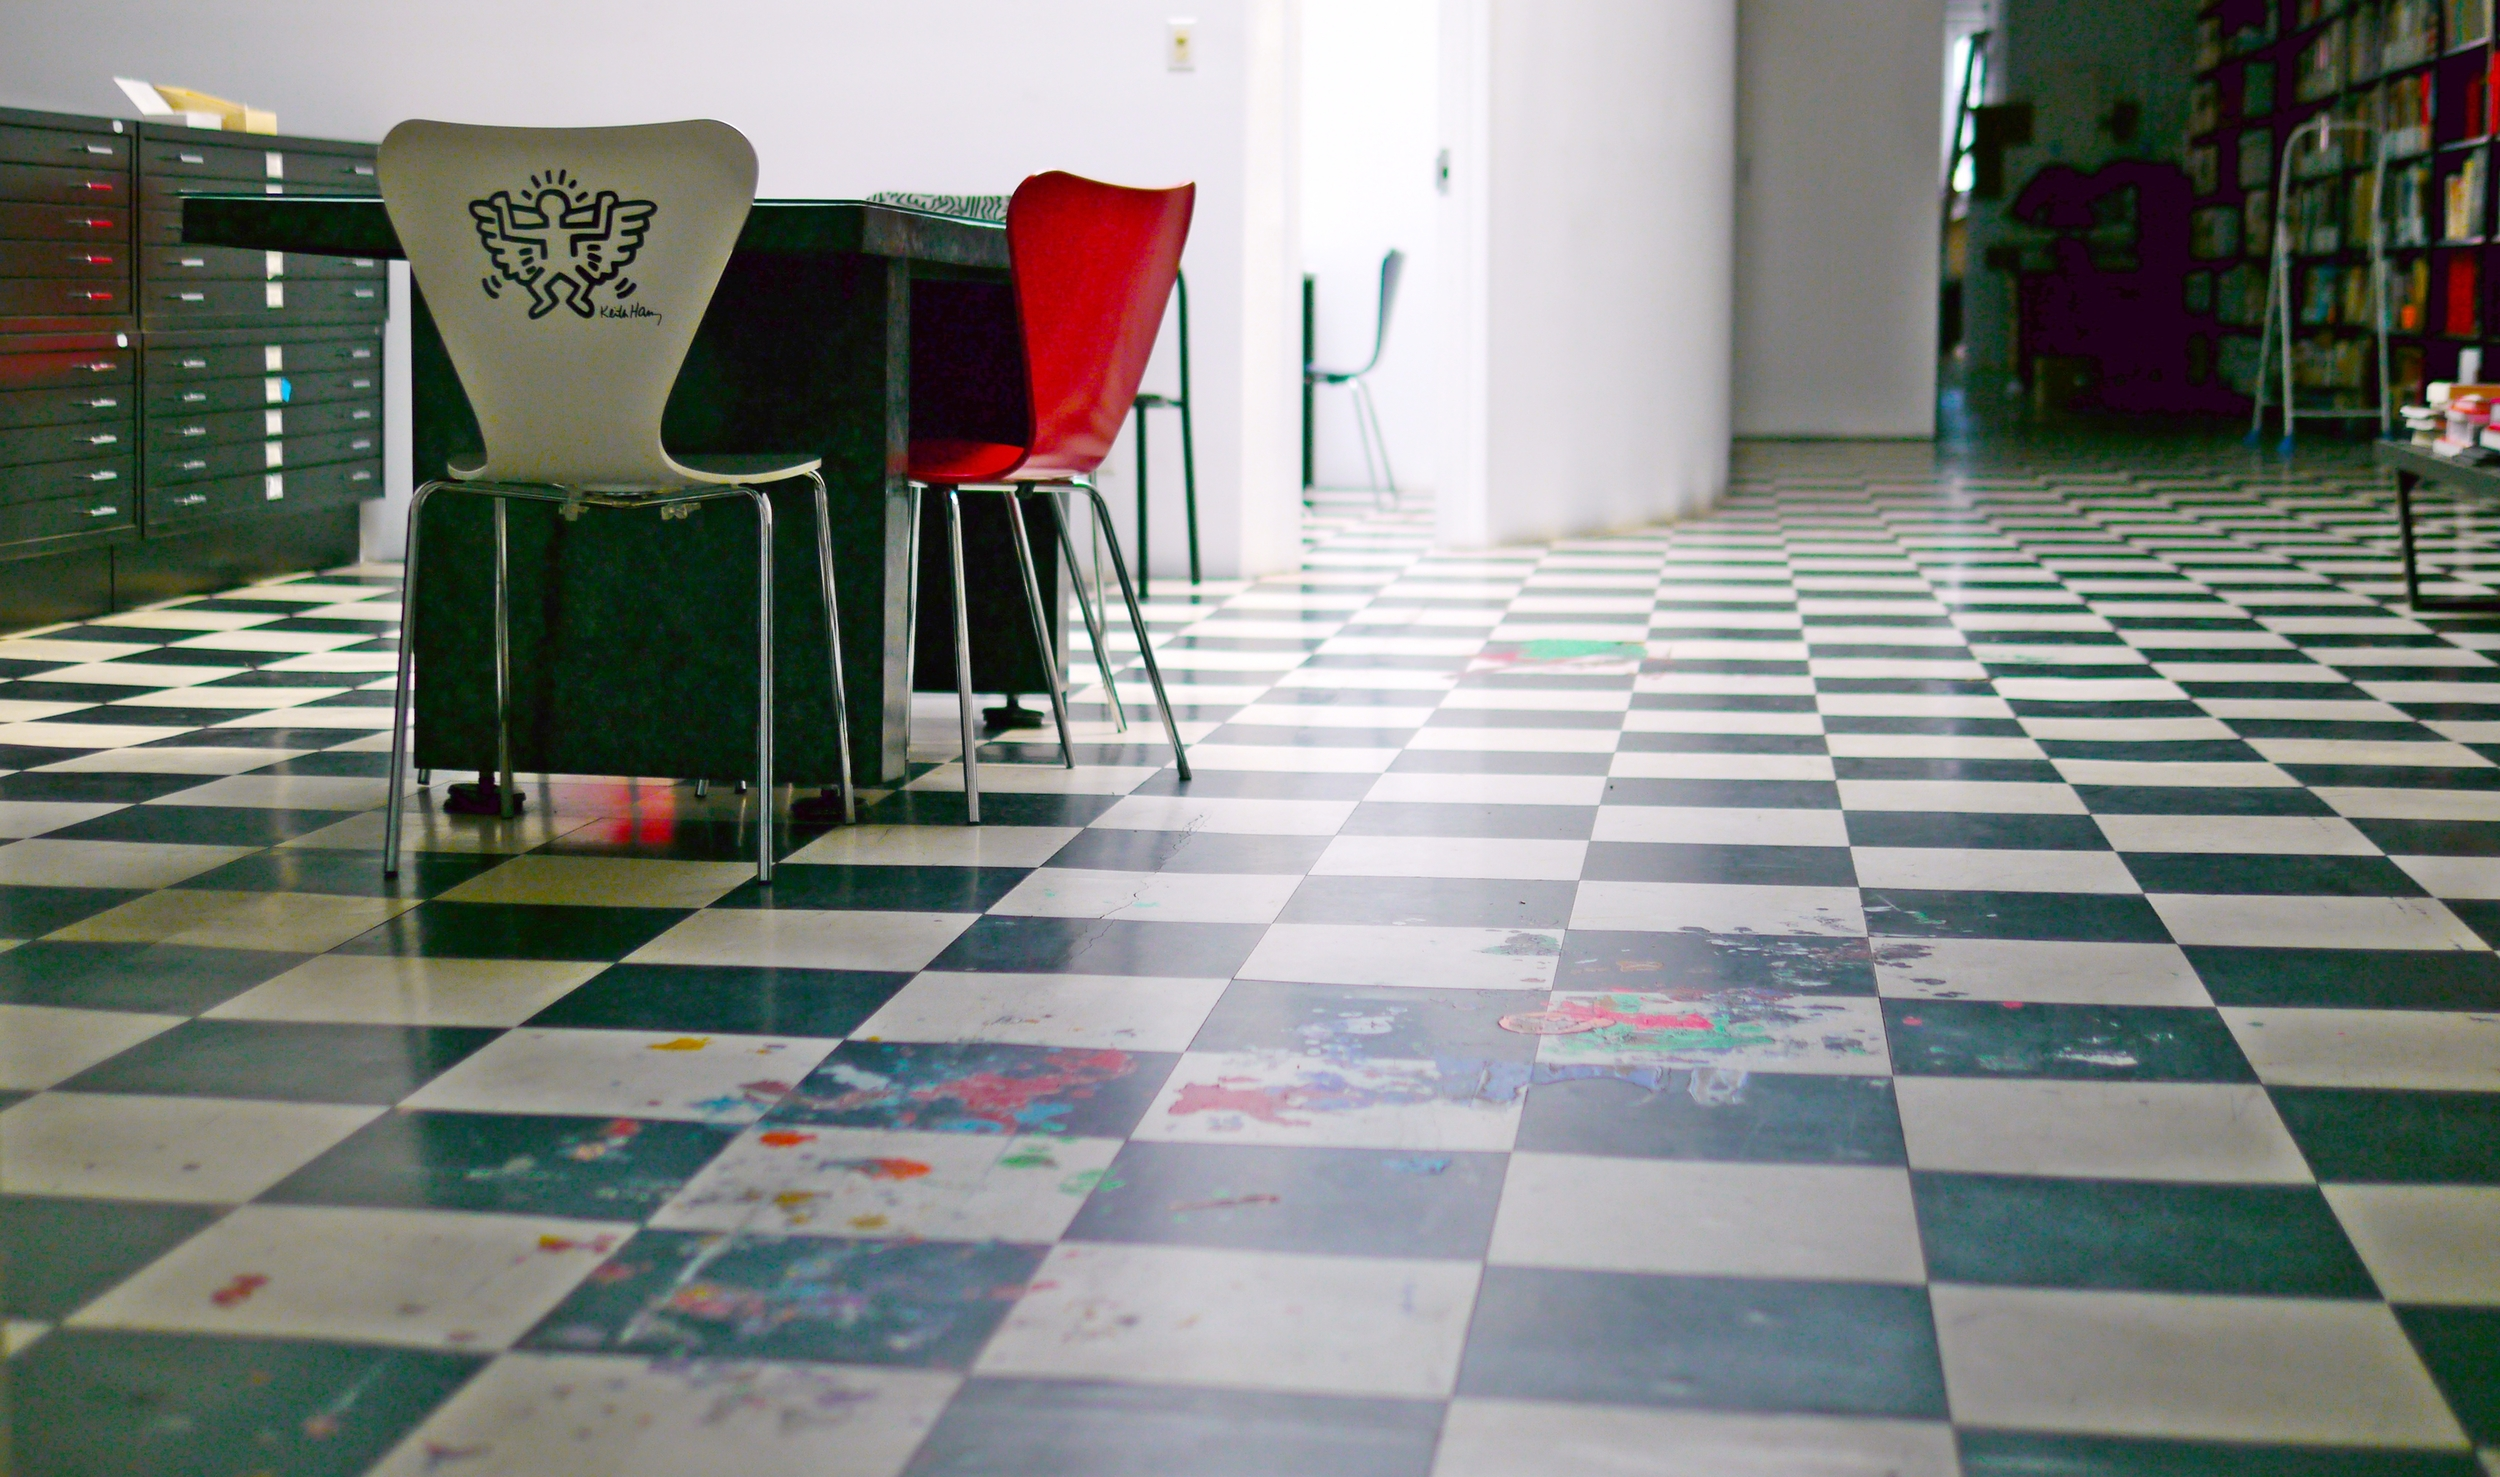 The splotchy marks of paint on the floor were left there by Keith when he used to paint in this studio. Keith Haring artwork © Keith Haring Foundation